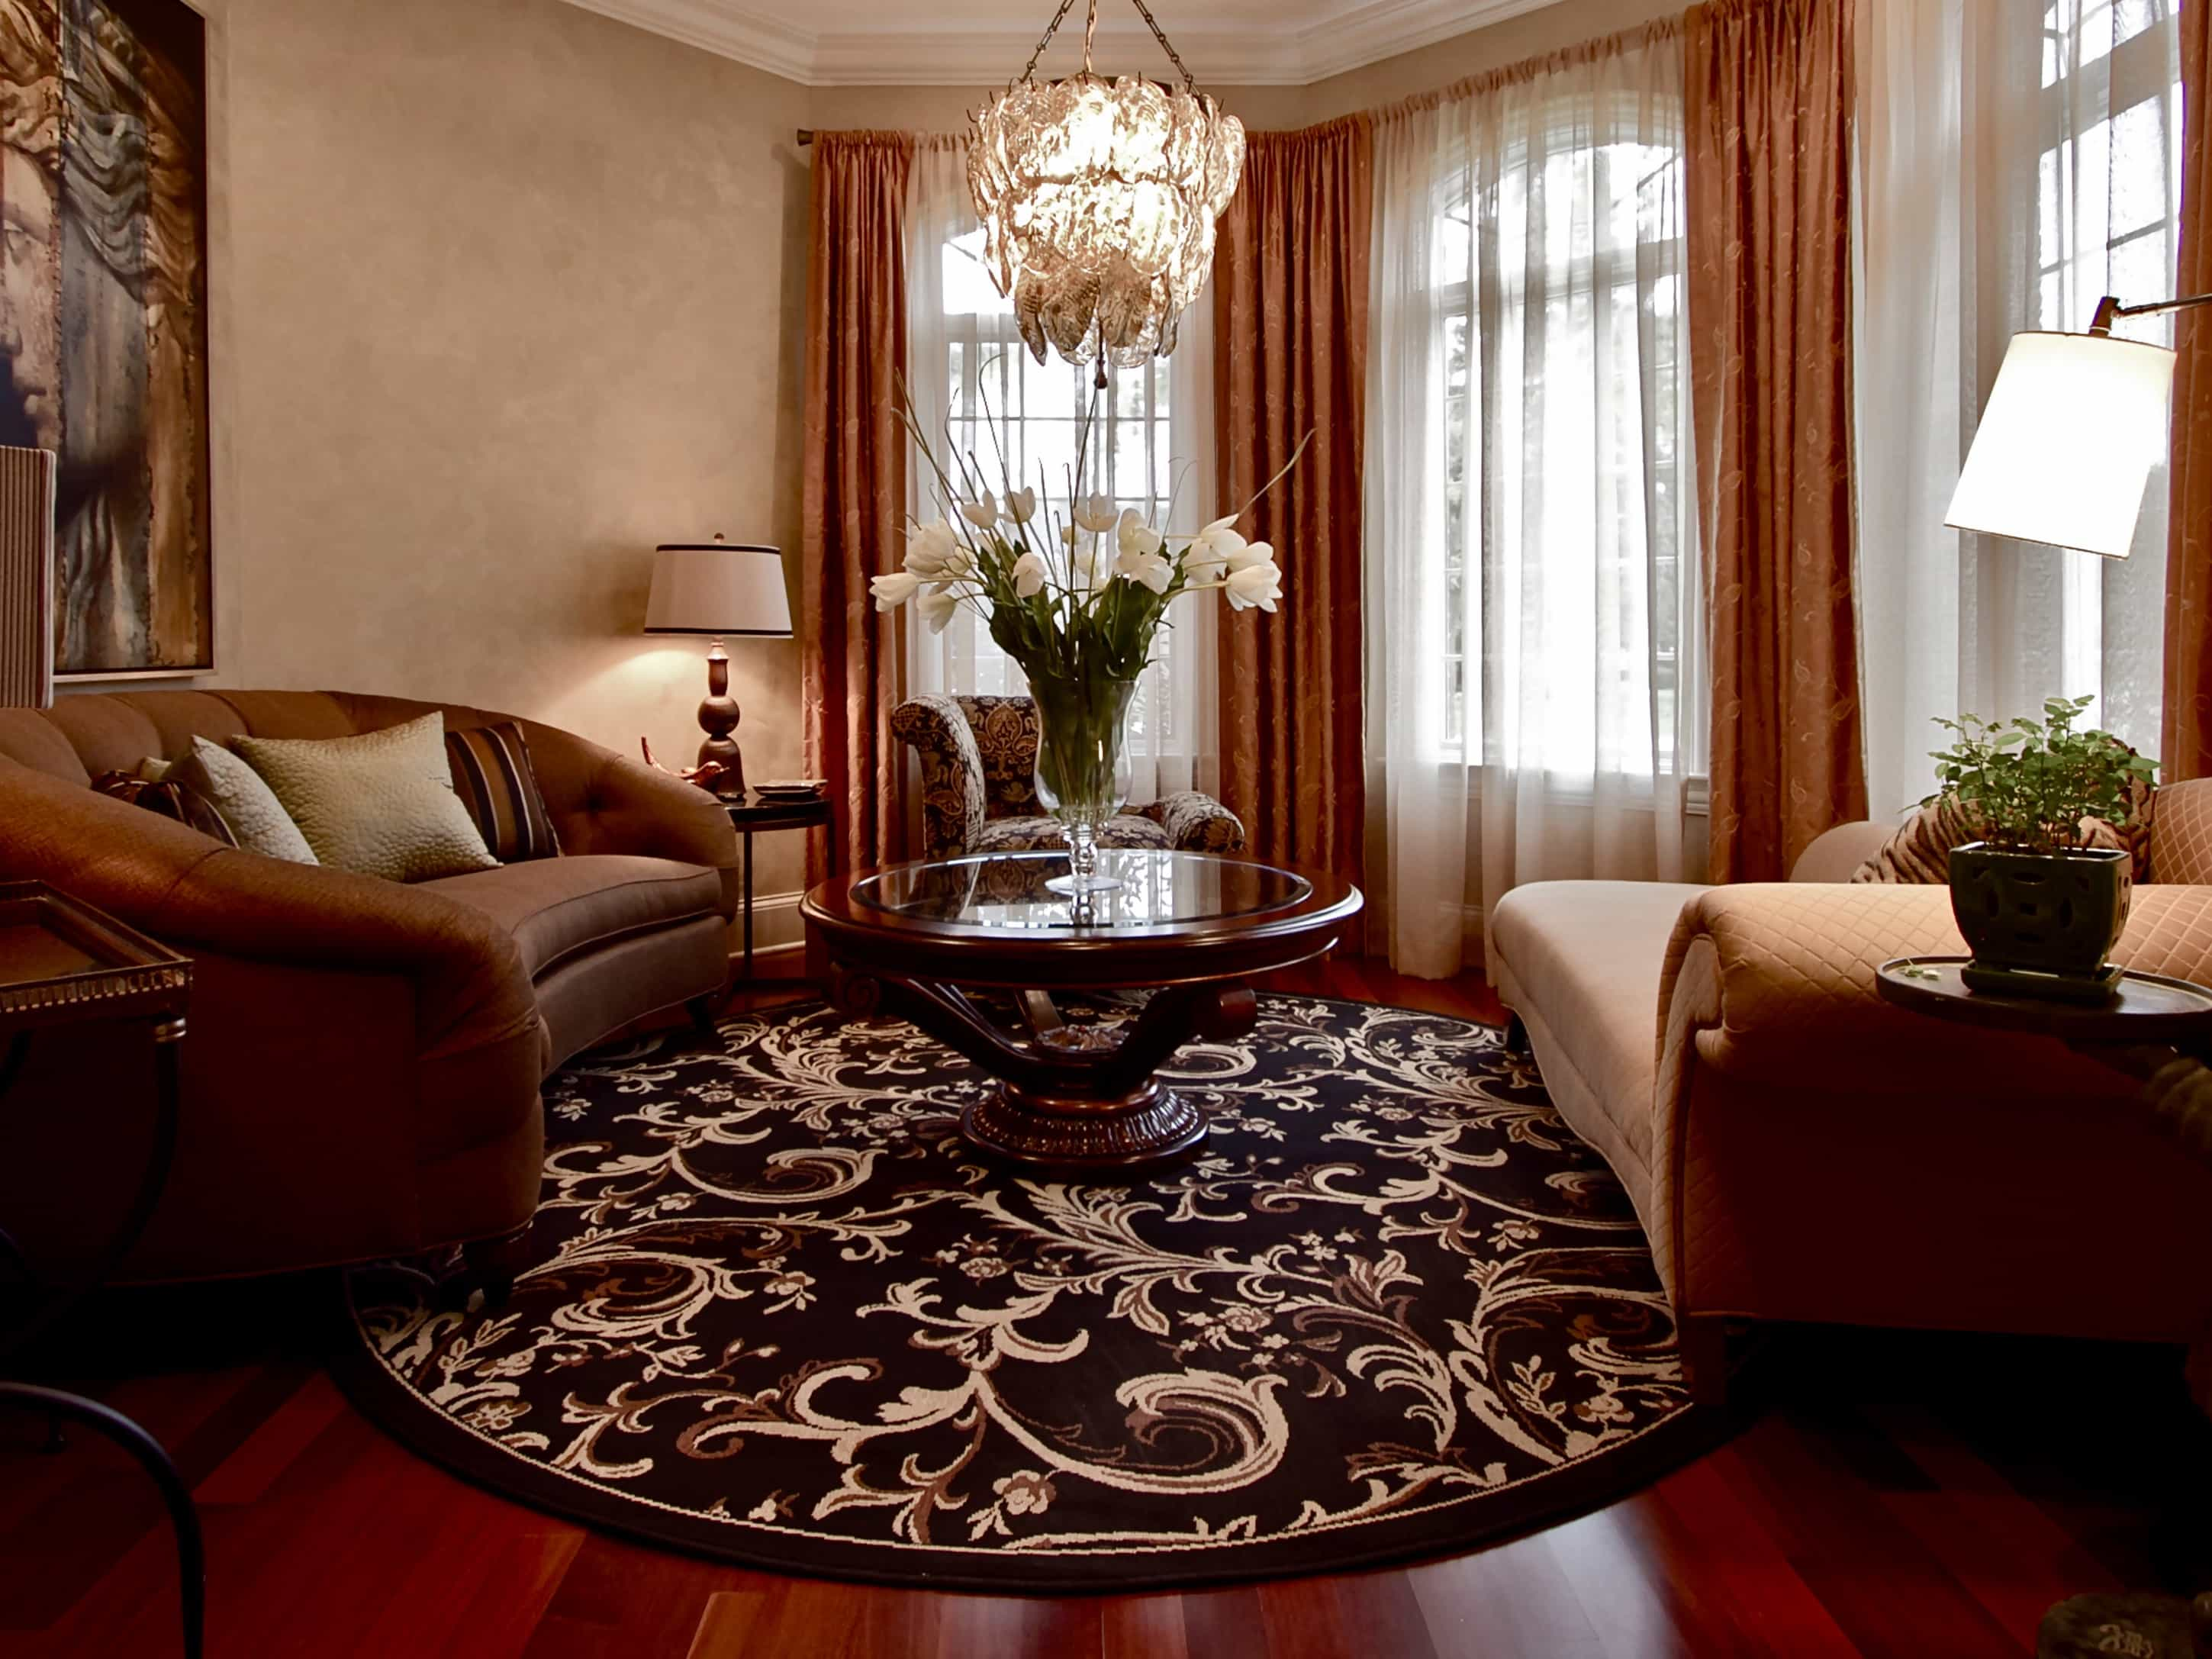 What you have to think before choose a rugs 1446 rugs for Round area rugs for living room